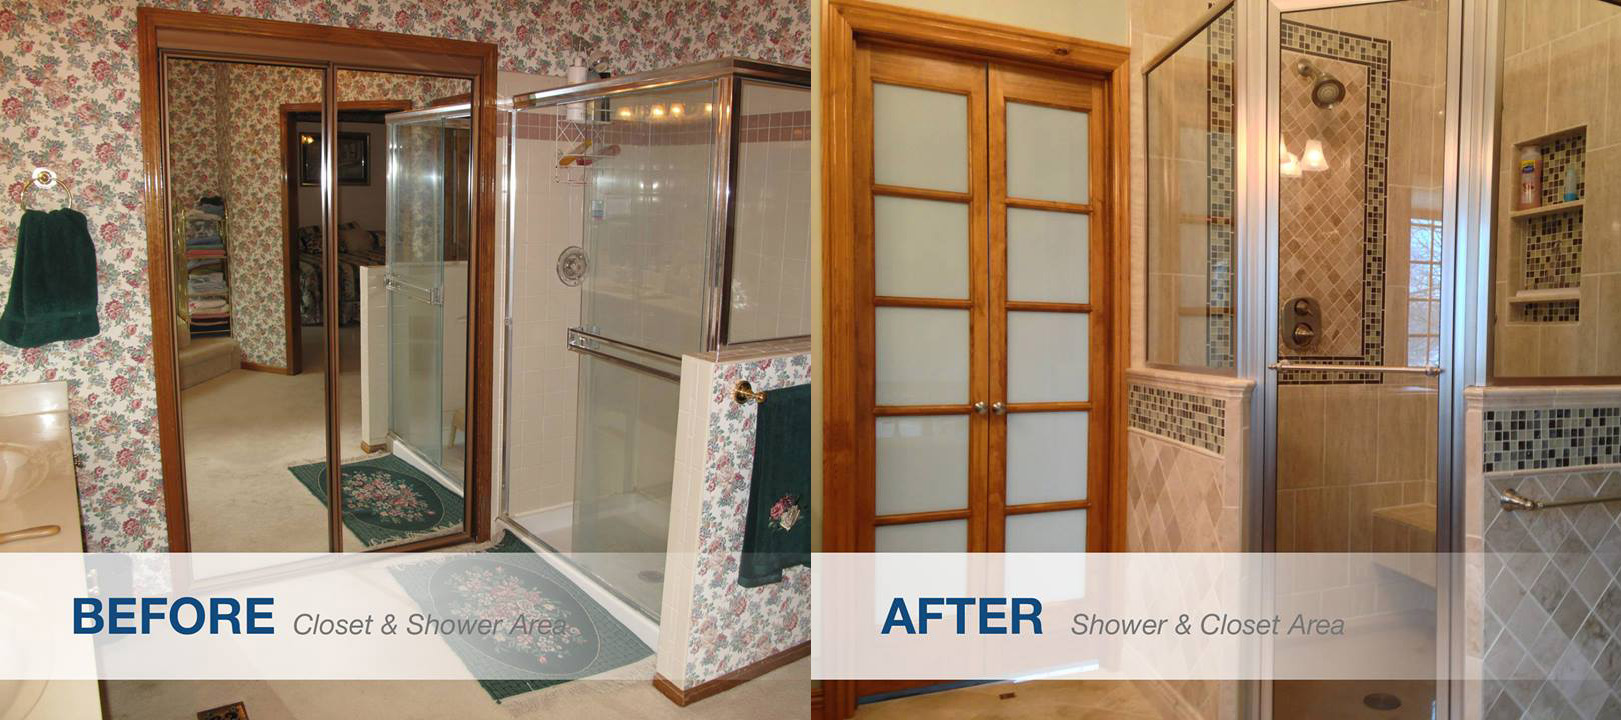 Before And After Pictures Of Bathroom Remodels Before And After .